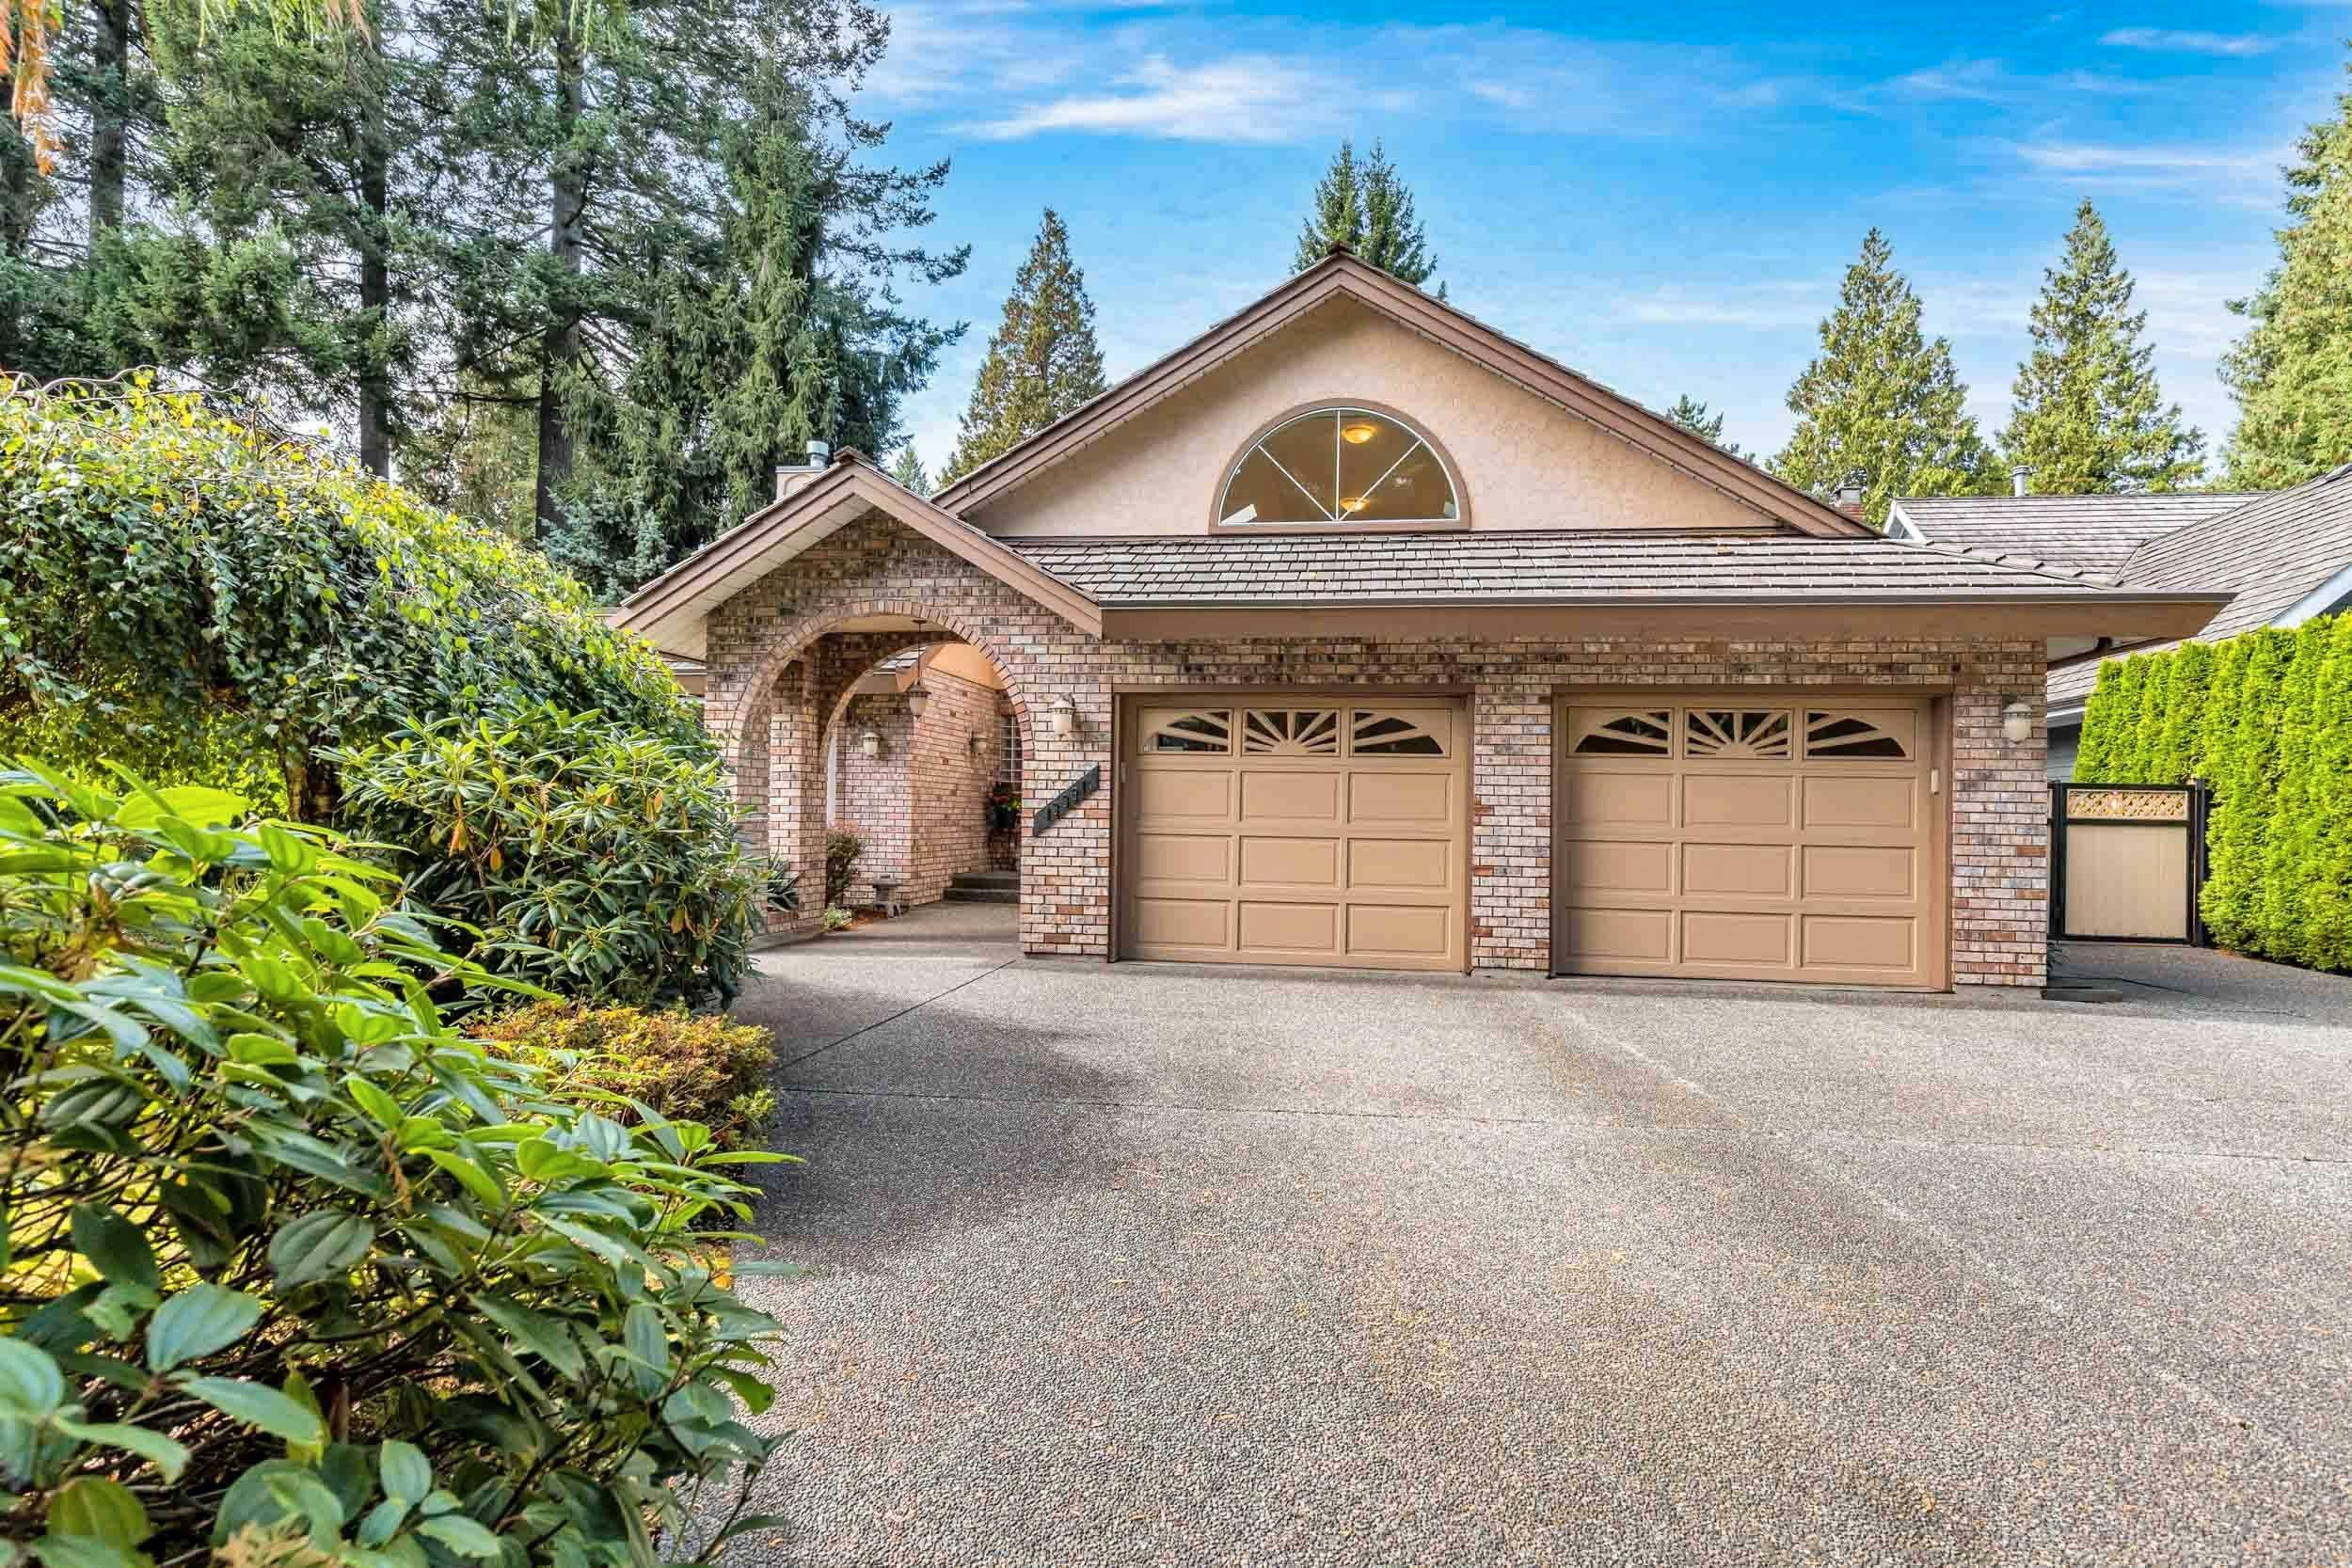 """Main Photo: 13331 17A Avenue in Surrey: Crescent Bch Ocean Pk. House for sale in """"Amble Greene"""" (South Surrey White Rock)  : MLS®# R2619025"""